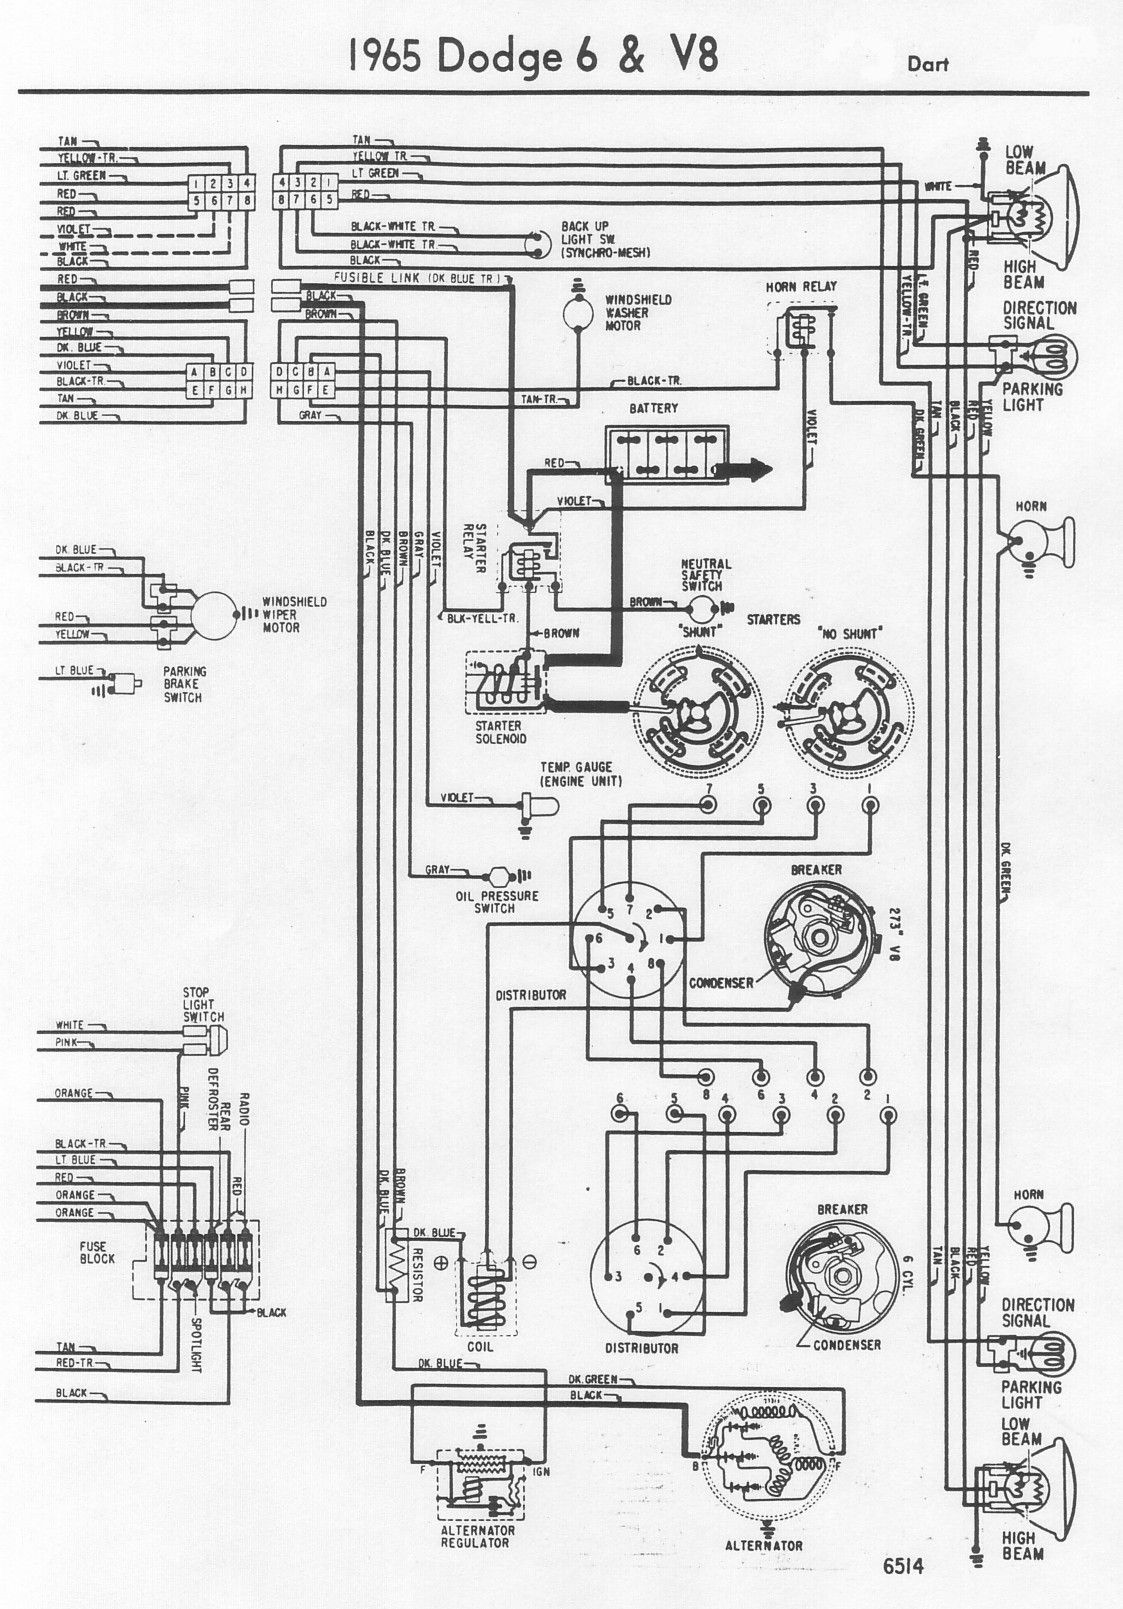 1965 dodge wiring diagram wiring diagram show 1965 dodge coronet wiring diagram [ 1123 x 1609 Pixel ]